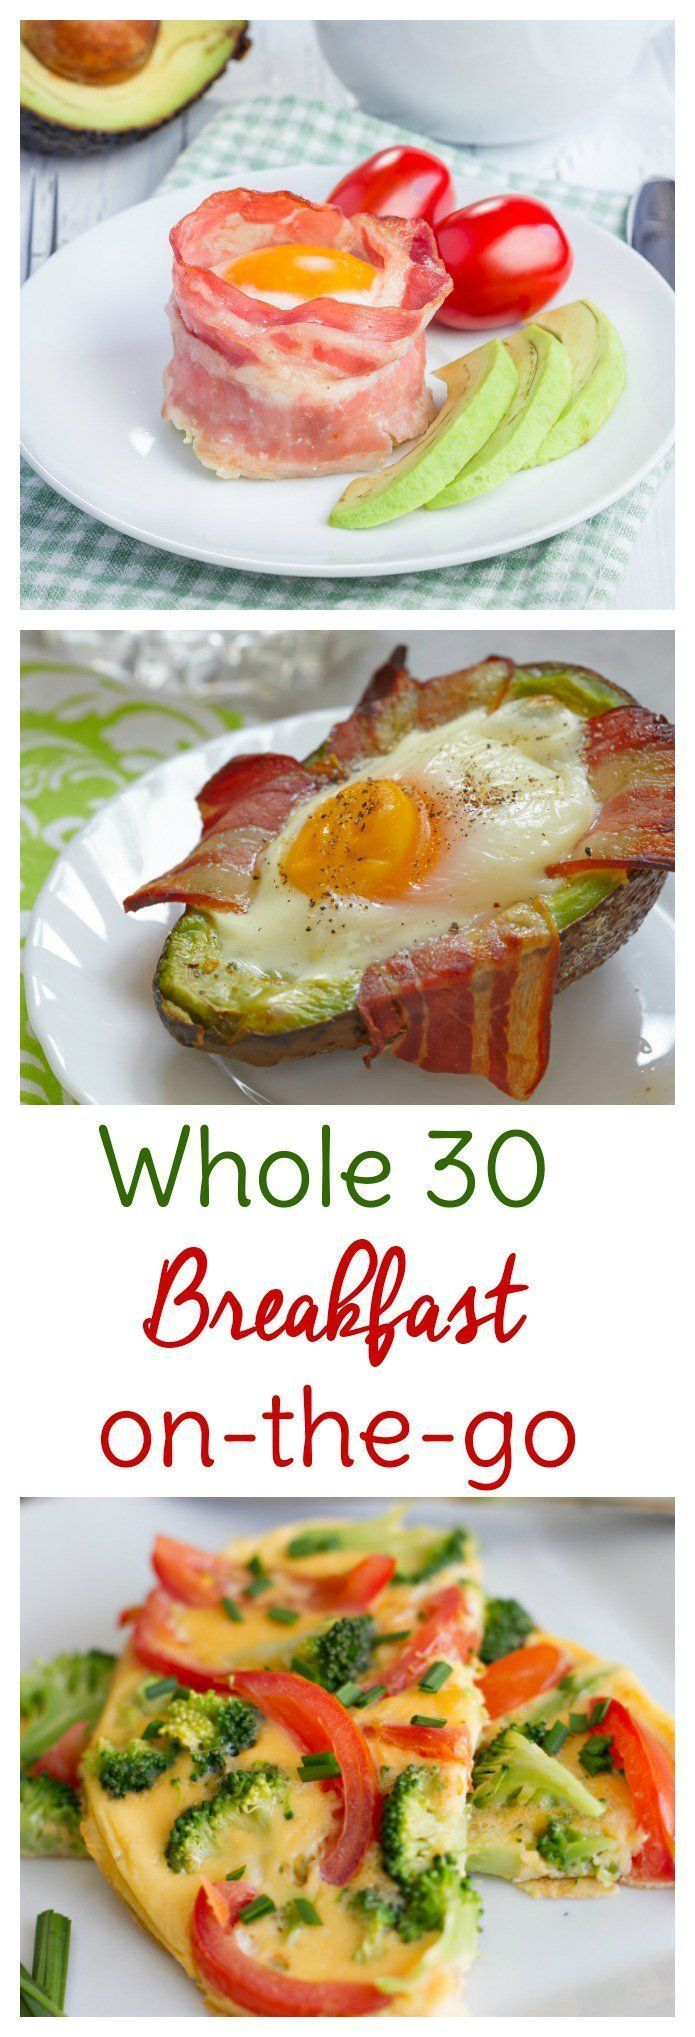 These Whole 30 breakfast ideas for on the go are a convenient way to start your day off on the right track. Make ahead these Whole 30 breakfast recipes or whip them up and eat on your way to work.